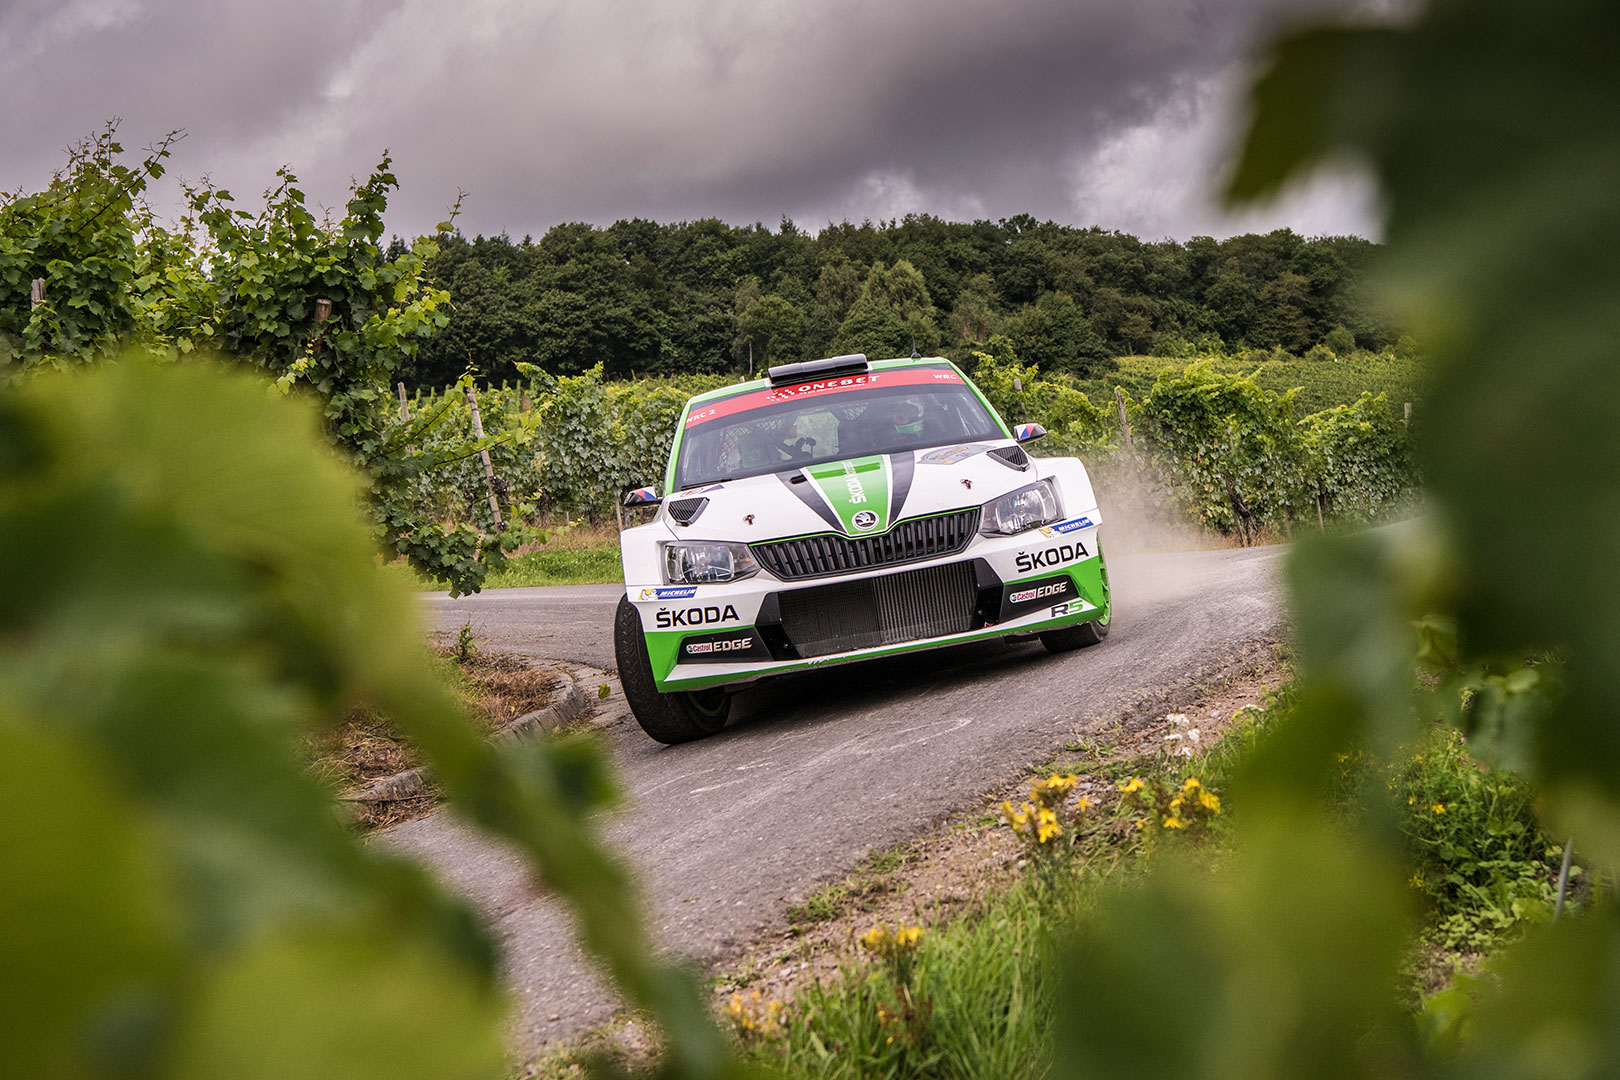 Rally Deutschland 2018: All You Need to Know Before The Rally Starts